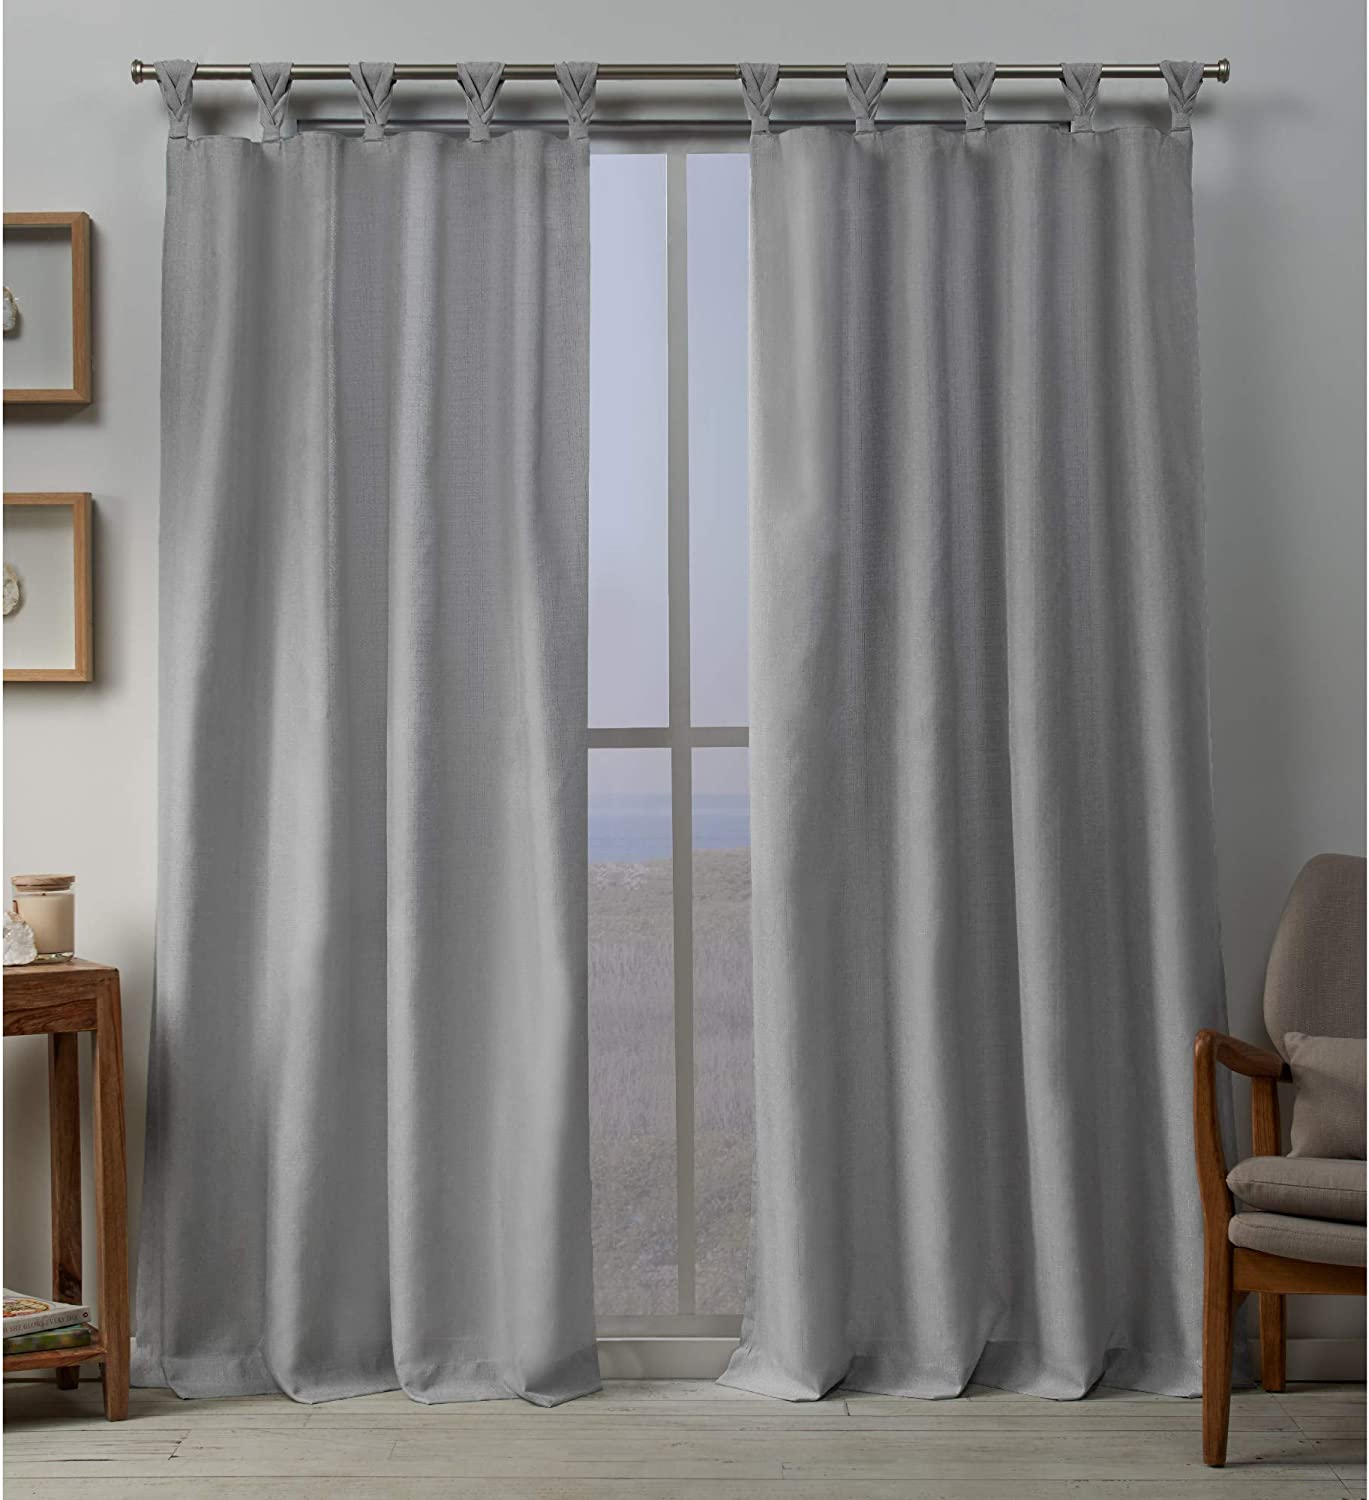 Exclusive Home Curtains Loha Linen Braided Tab Top Curtain Panel Pair, 54x96, Dove Grey